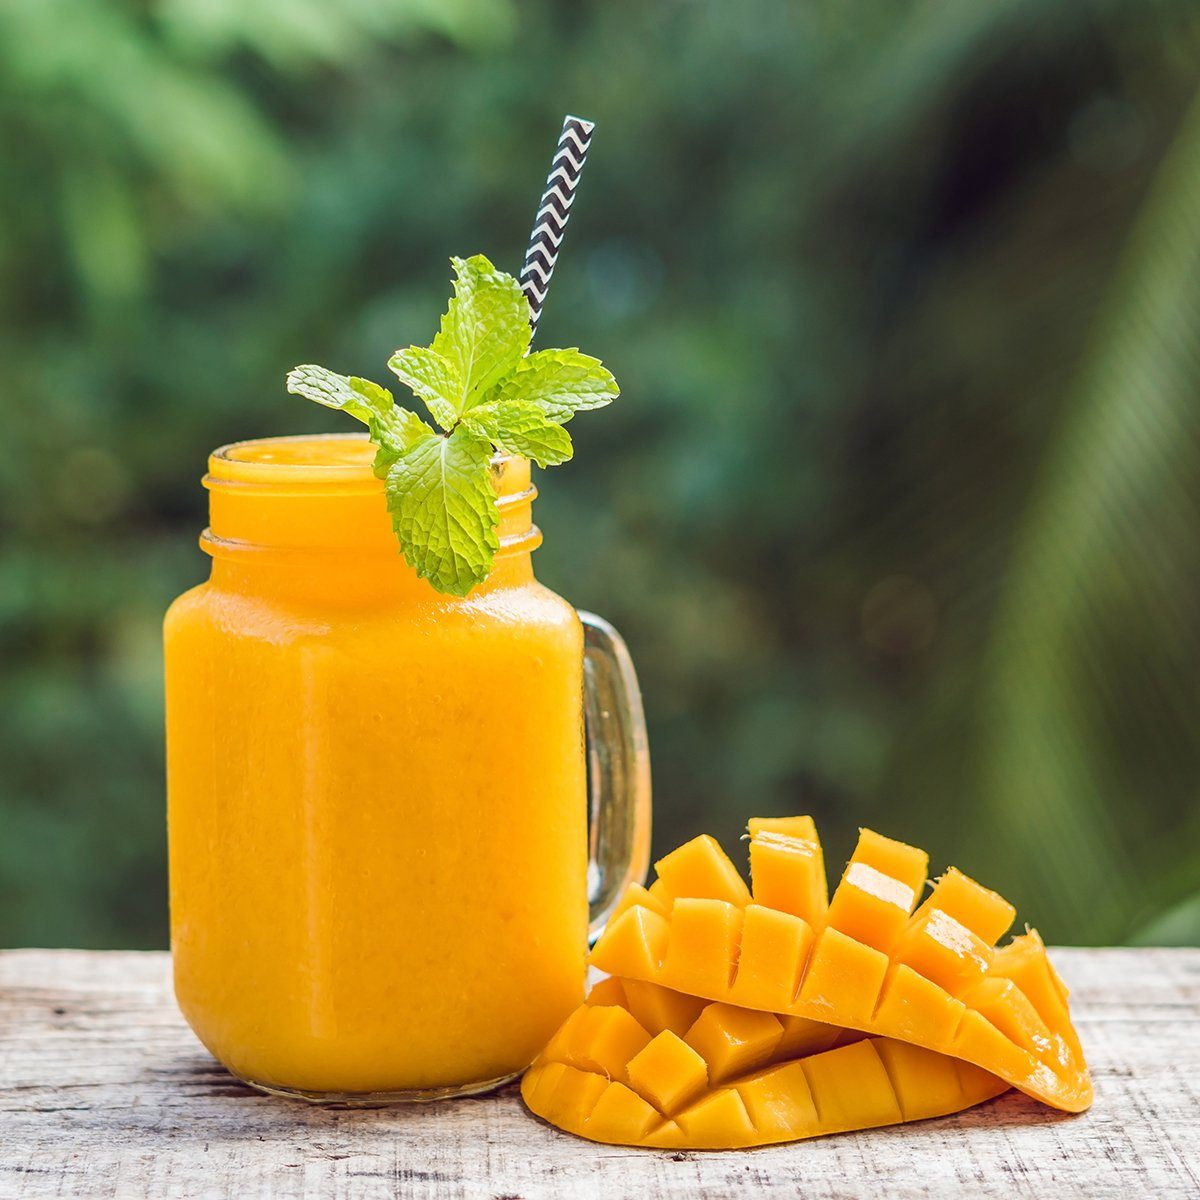 Mango smoothie in a glass Mason jar